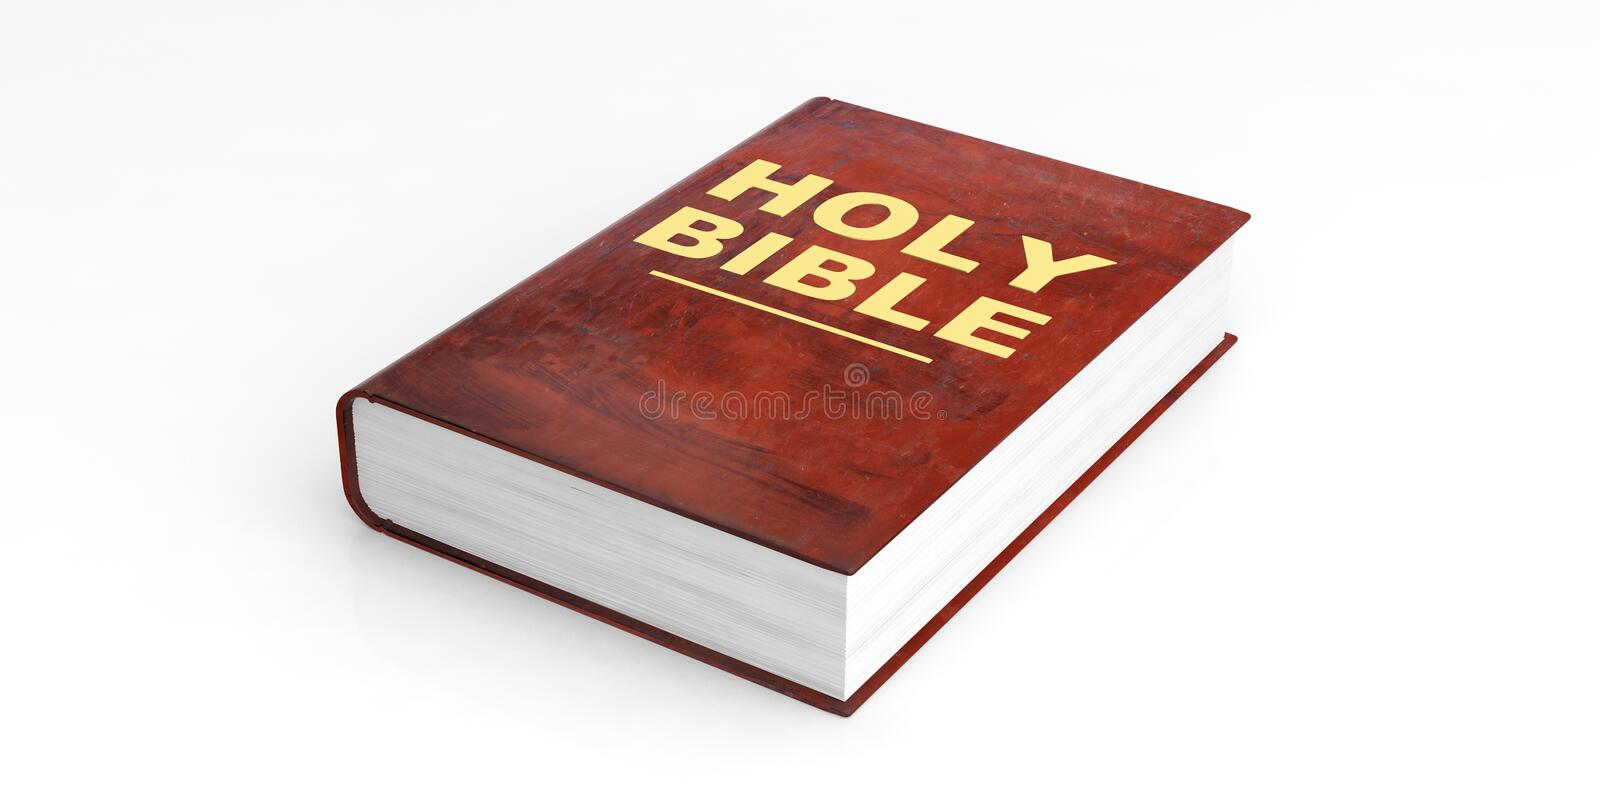 Holy Bible on white background. 3d illustration royalty free illustration